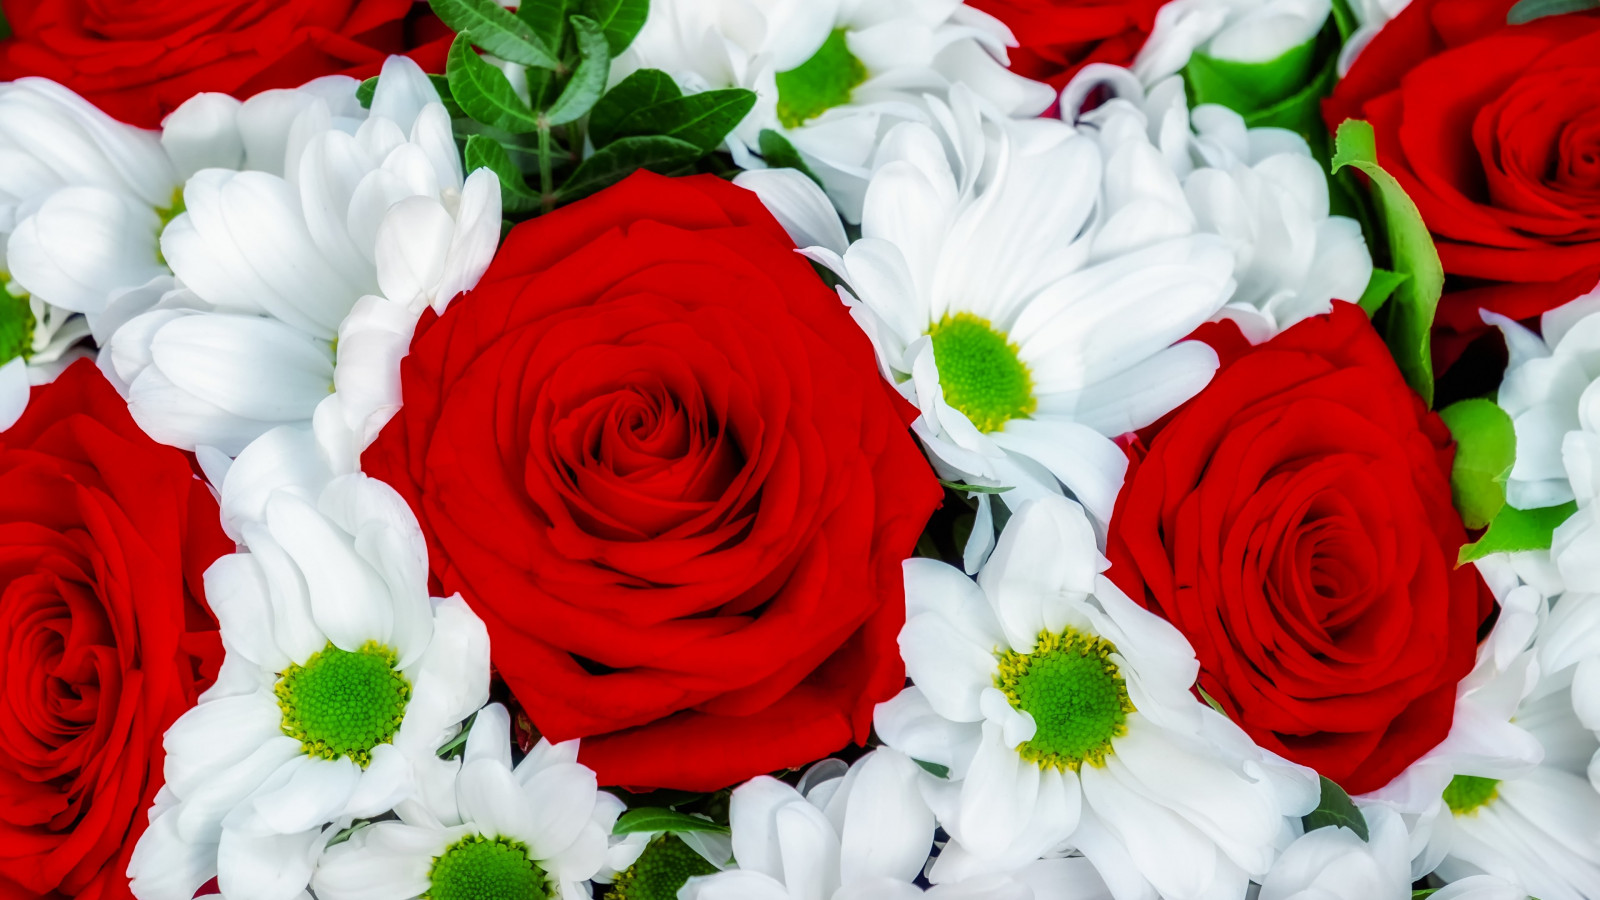 Roses and daisies bouquet wallpaper 1600x900